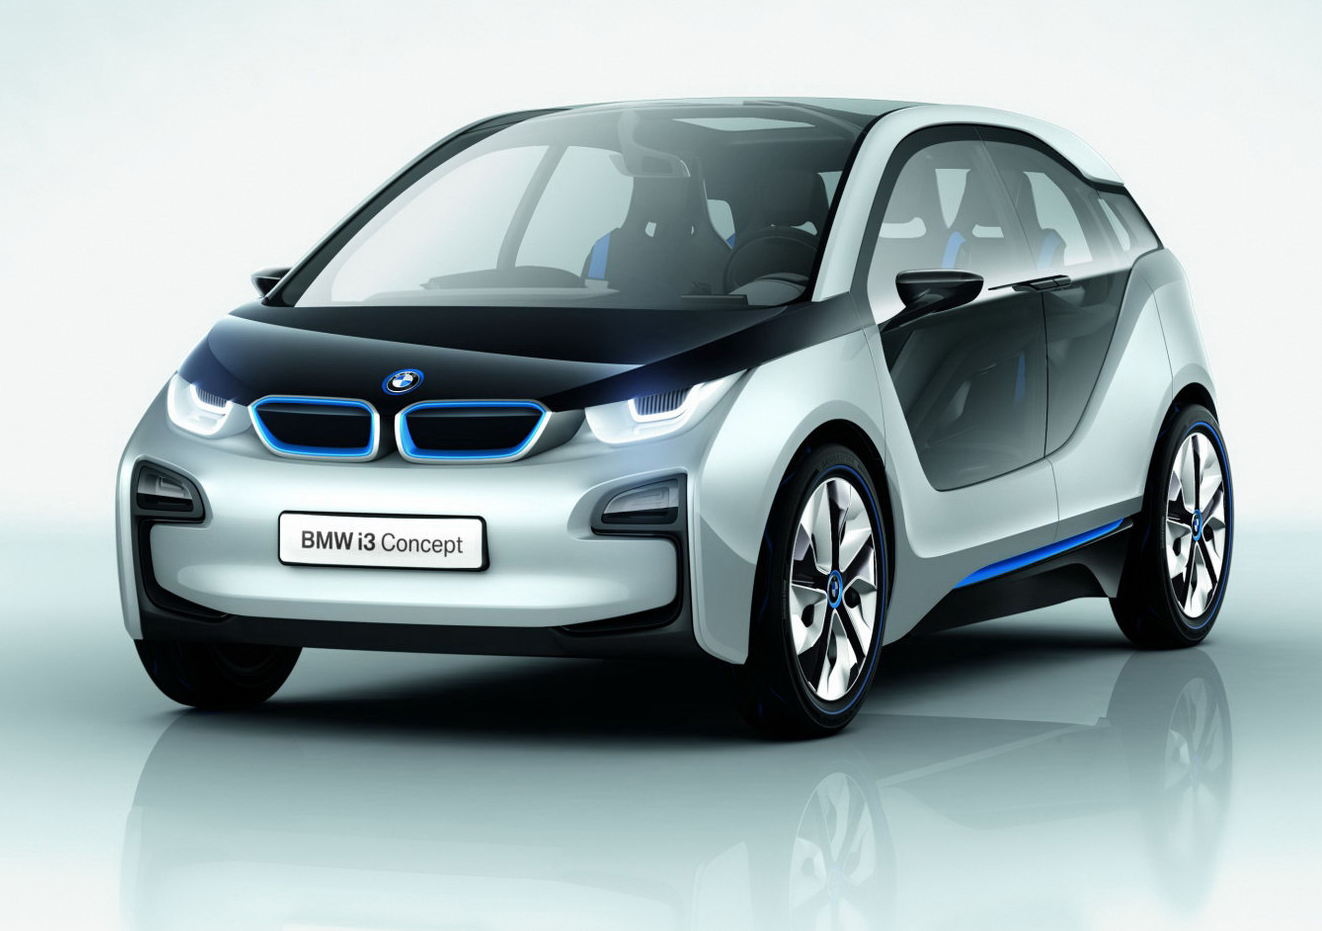 2013 Bmw I3 Concept Car Wallpapers Bikes Cars Wallpapers